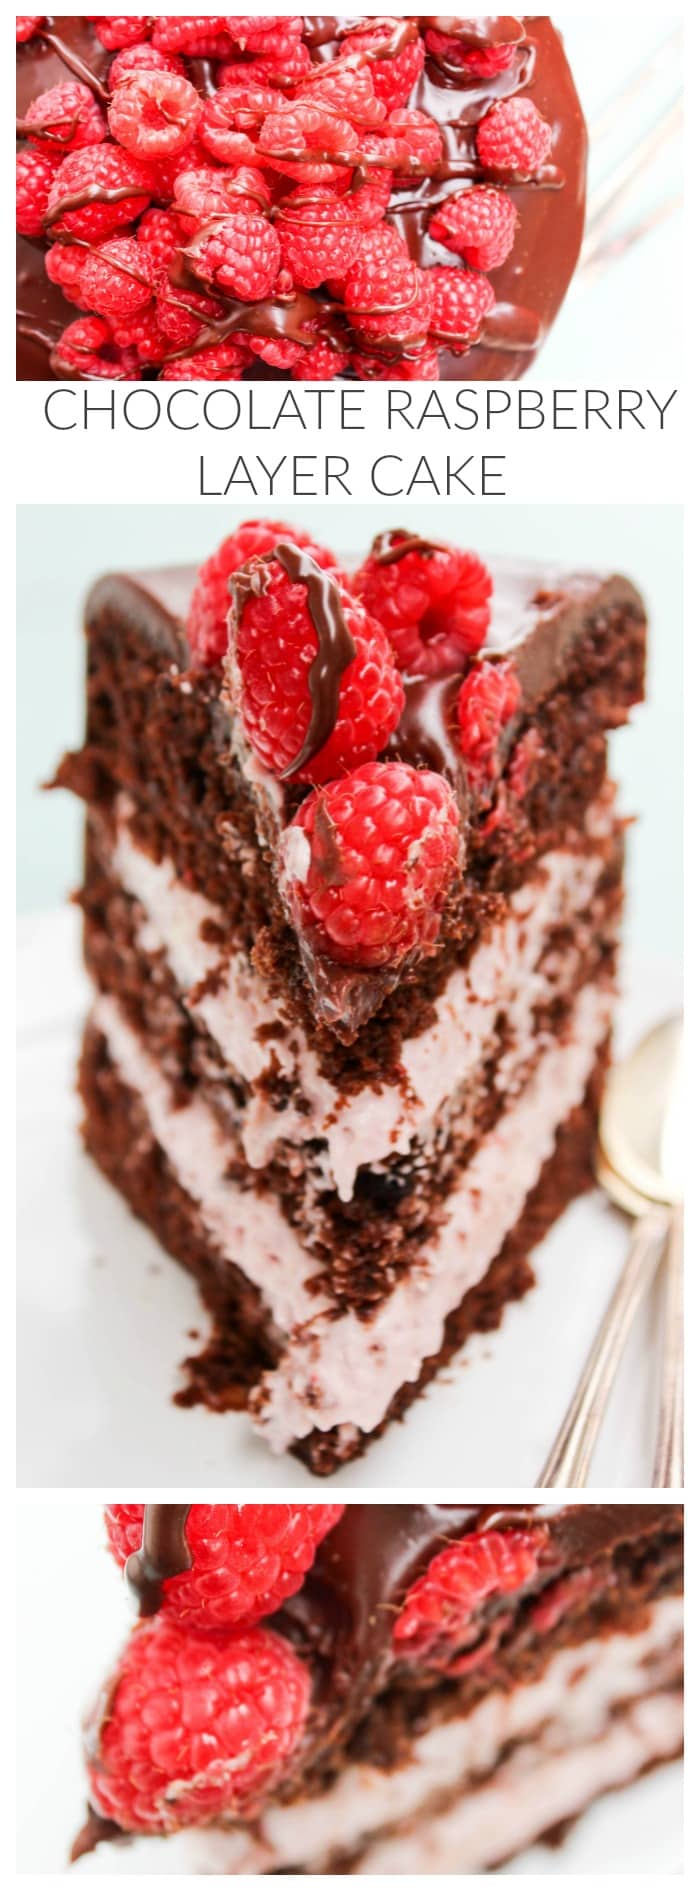 Raspberry Chocolate Cake Layer Recipe